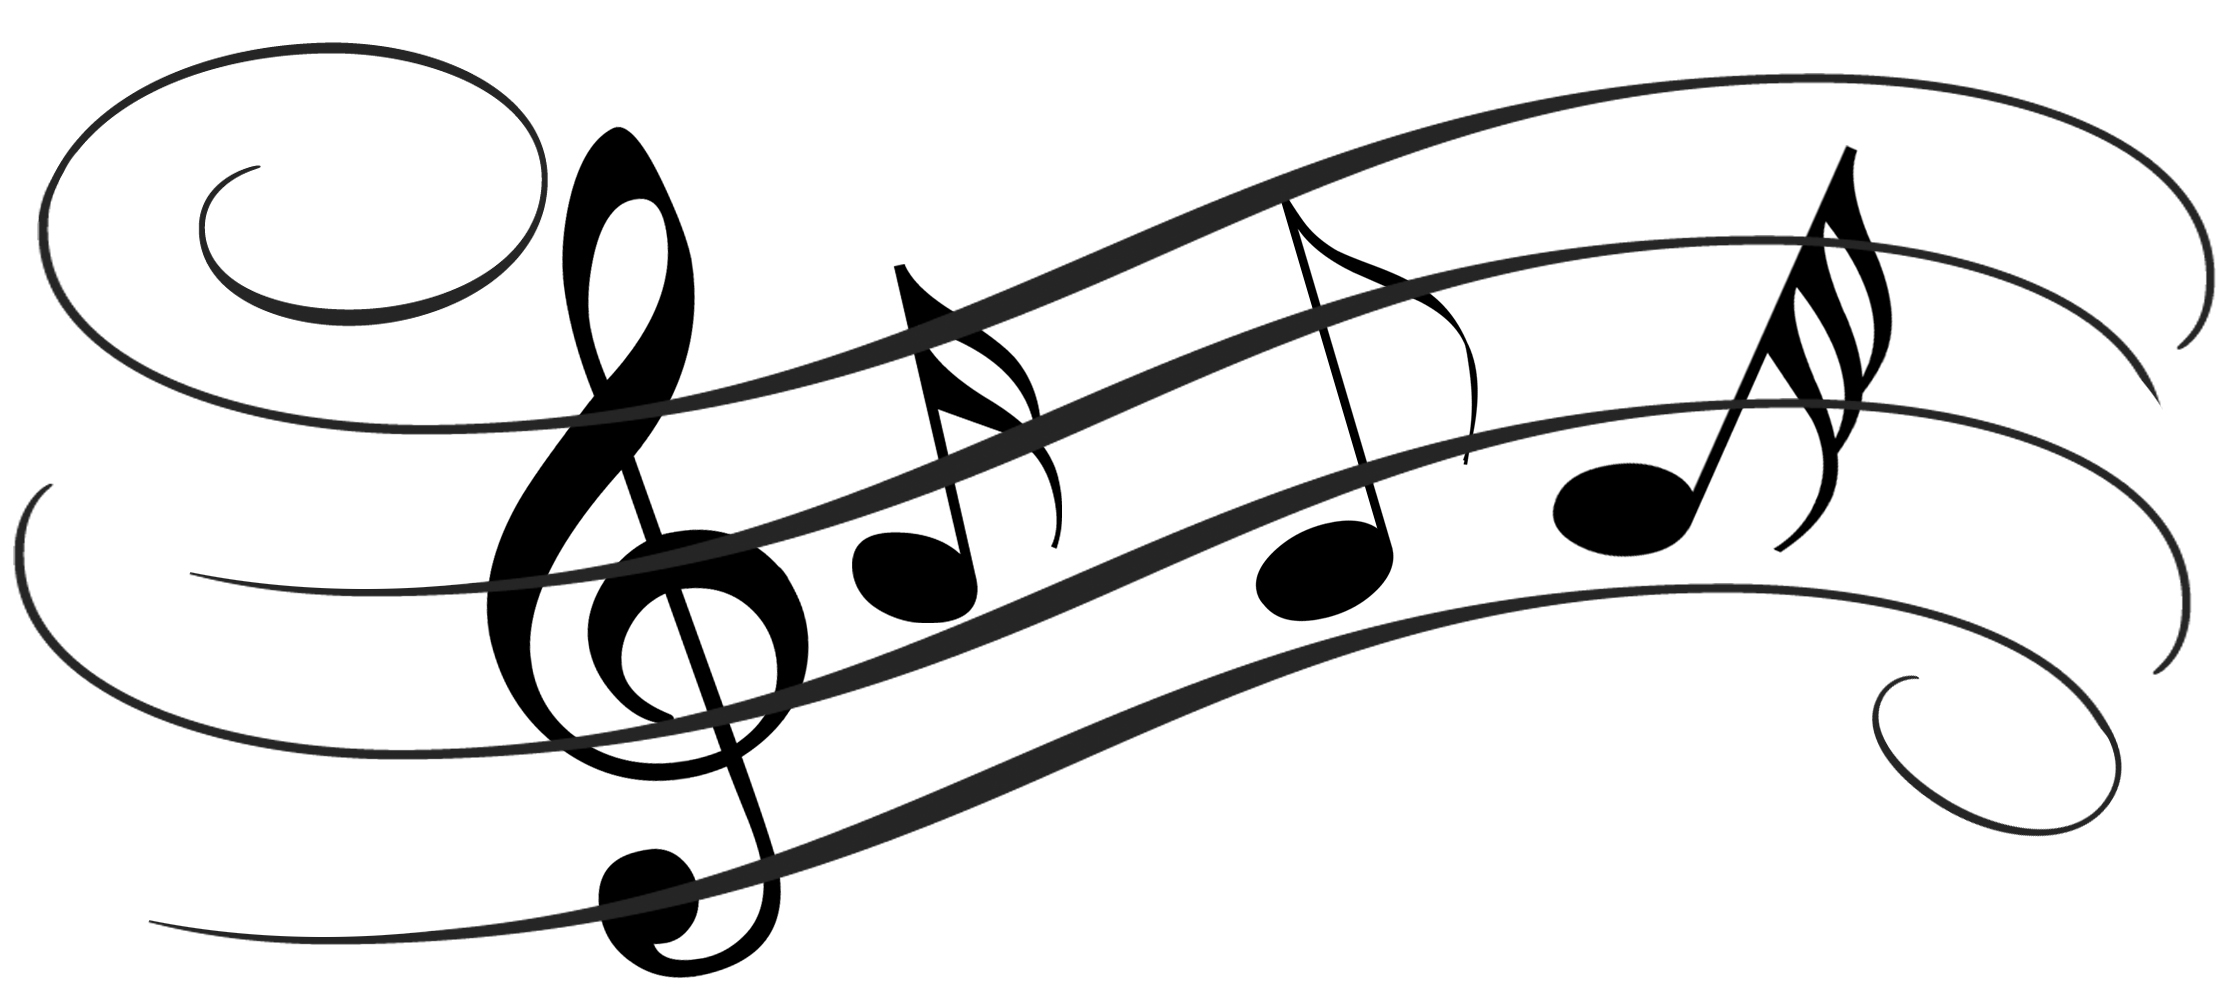 Misic clipart clip Music notes clip art free clipart images 4 - Cliparting.com clip